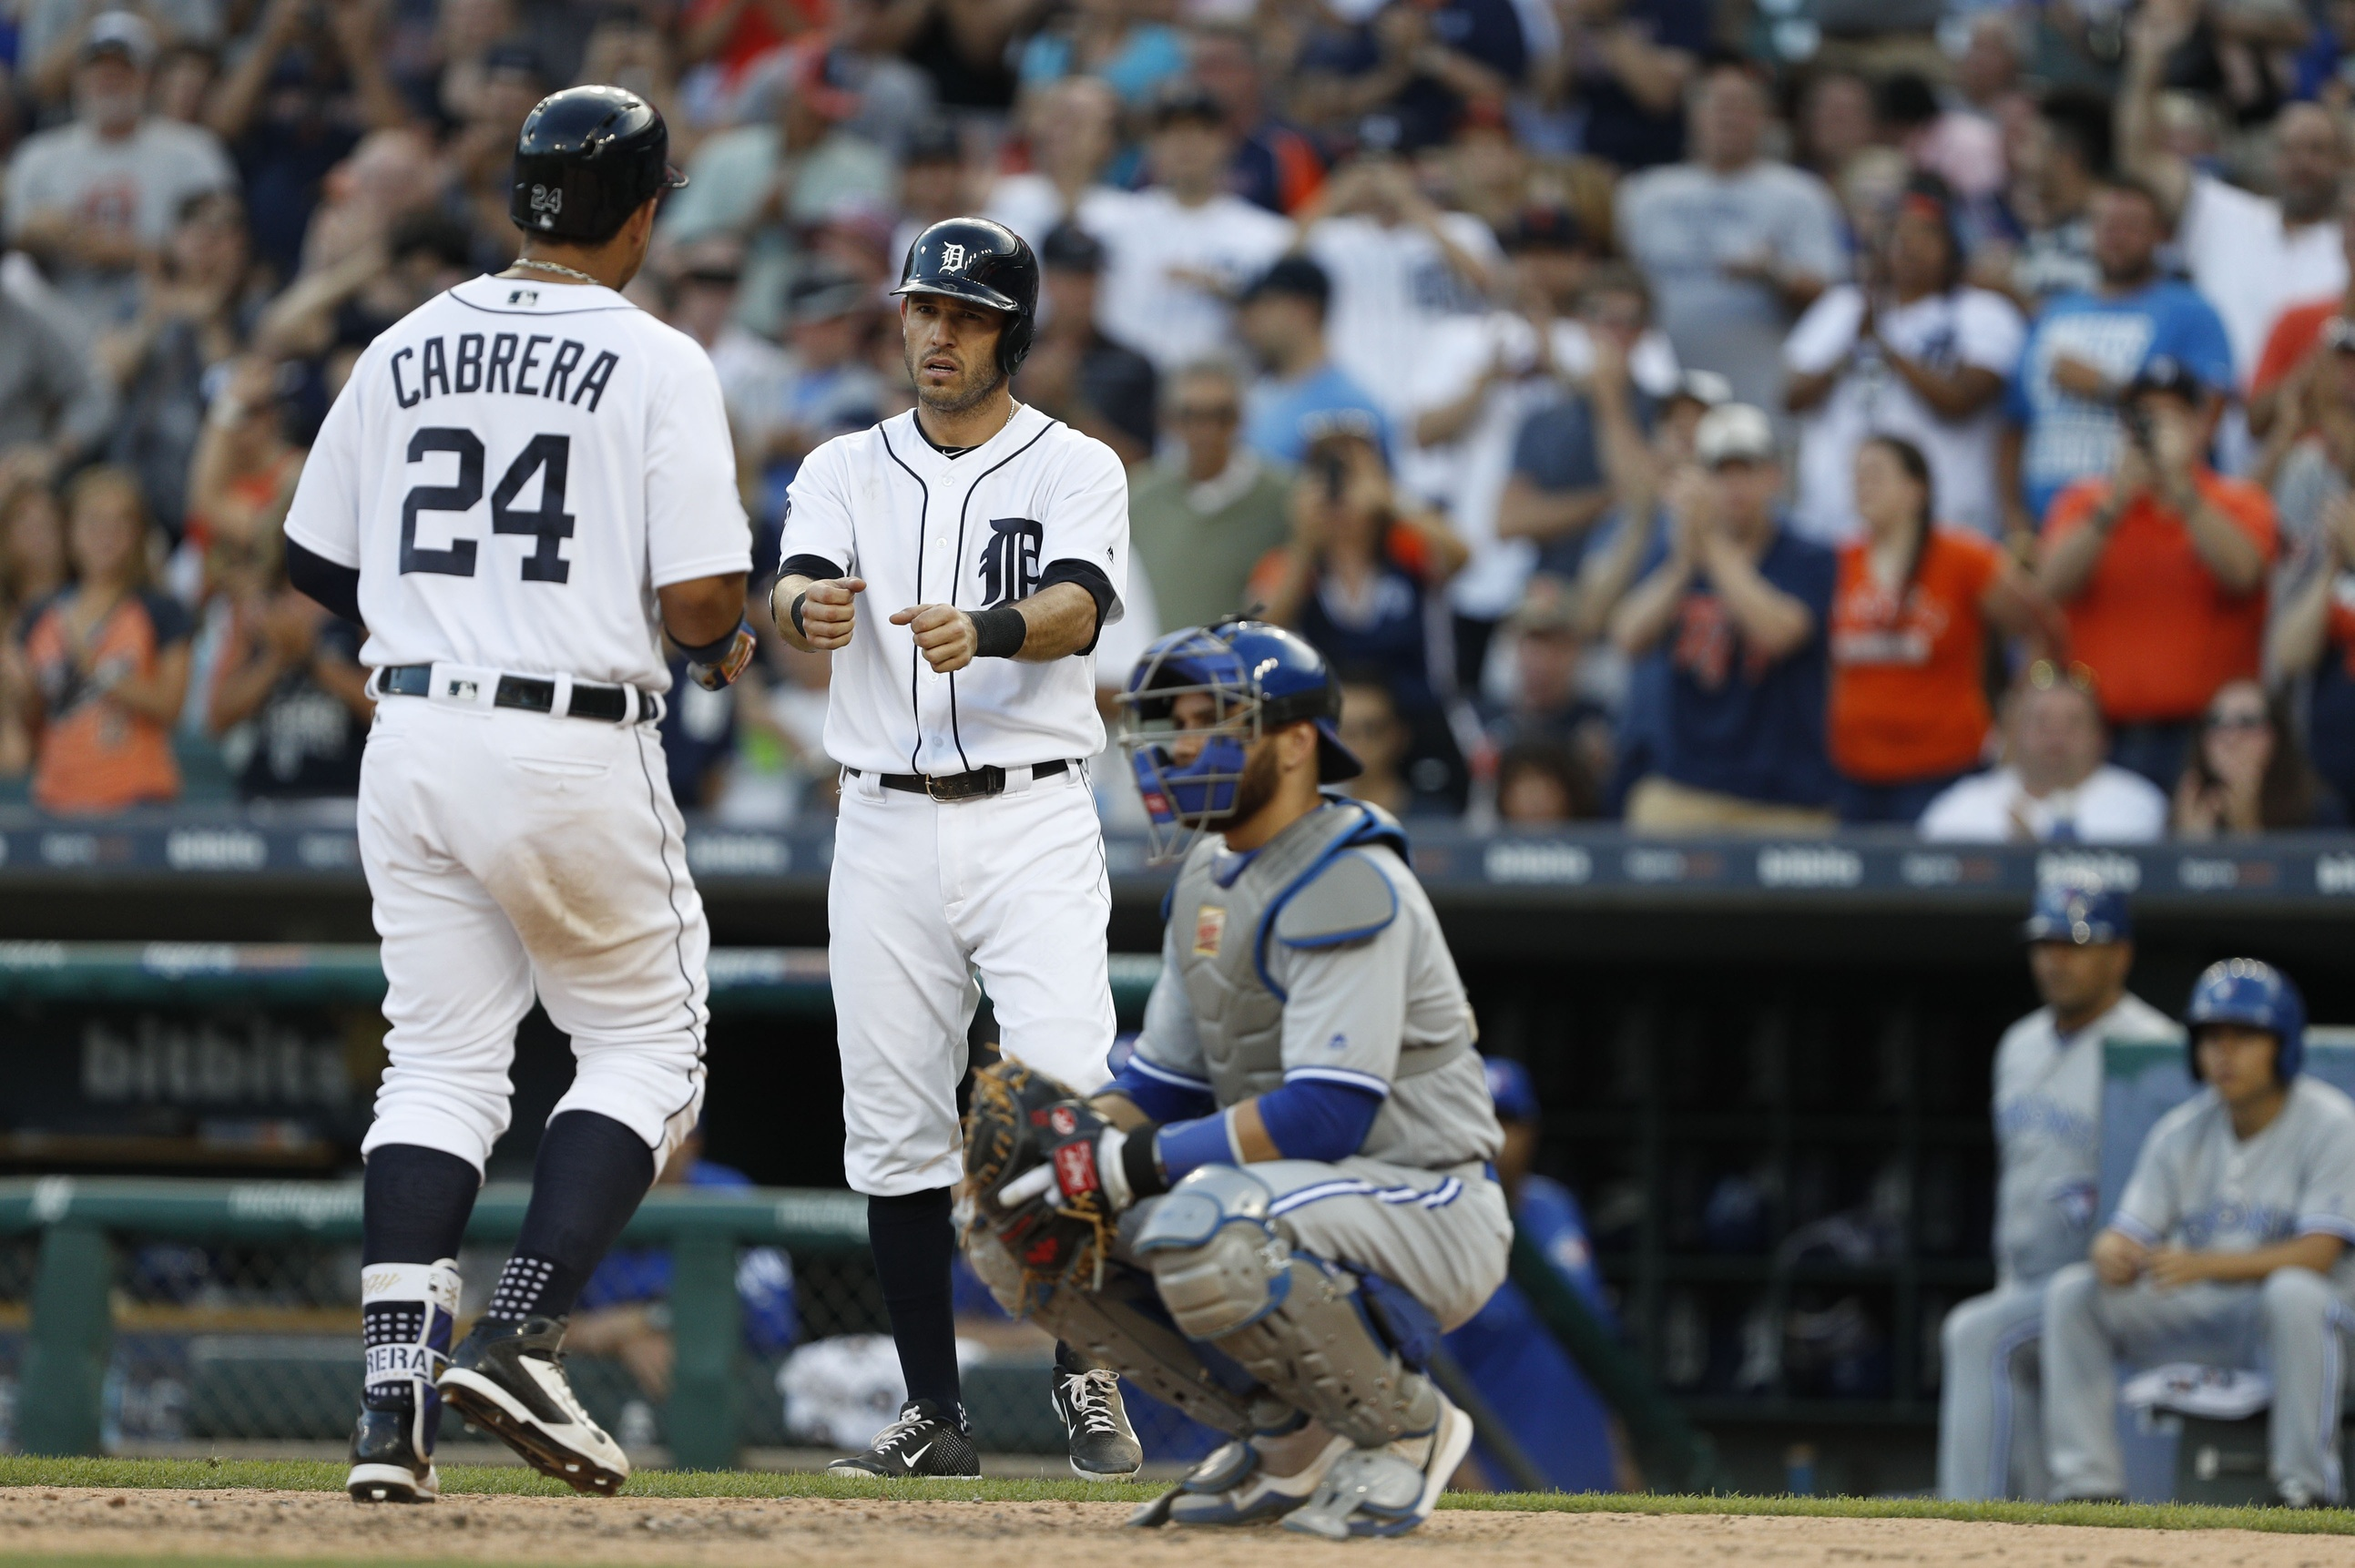 Miguel Cabrera and Ian Kinsler